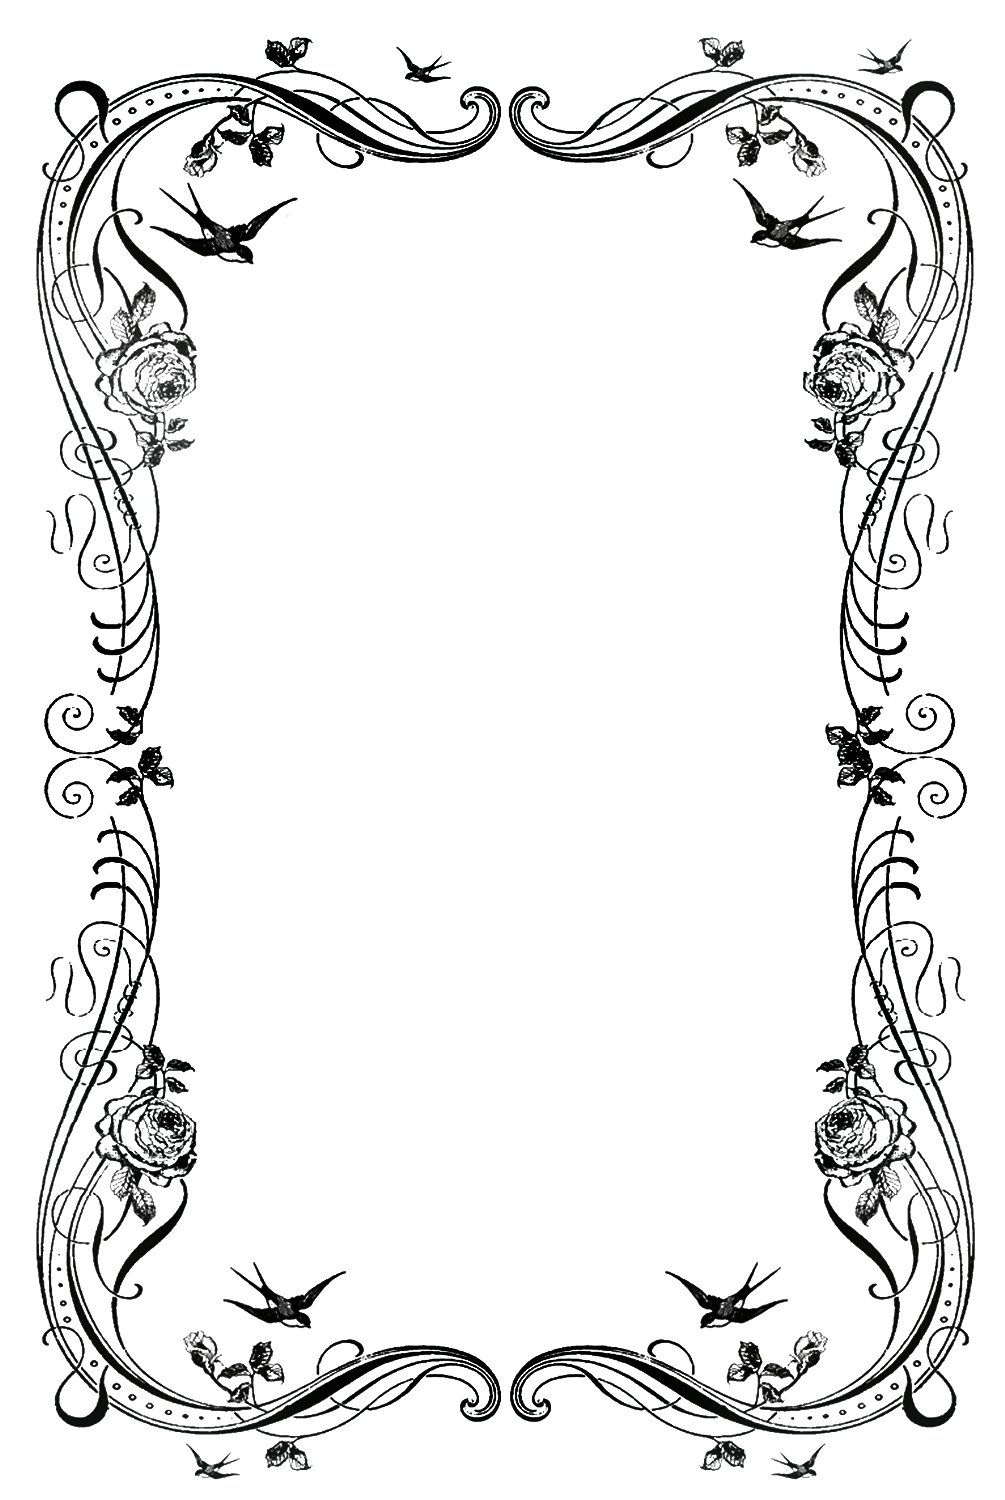 19 decorative border designs images free clip art borders free rh pinterest com clip art designs for kids black and white clip art designs for grandparents